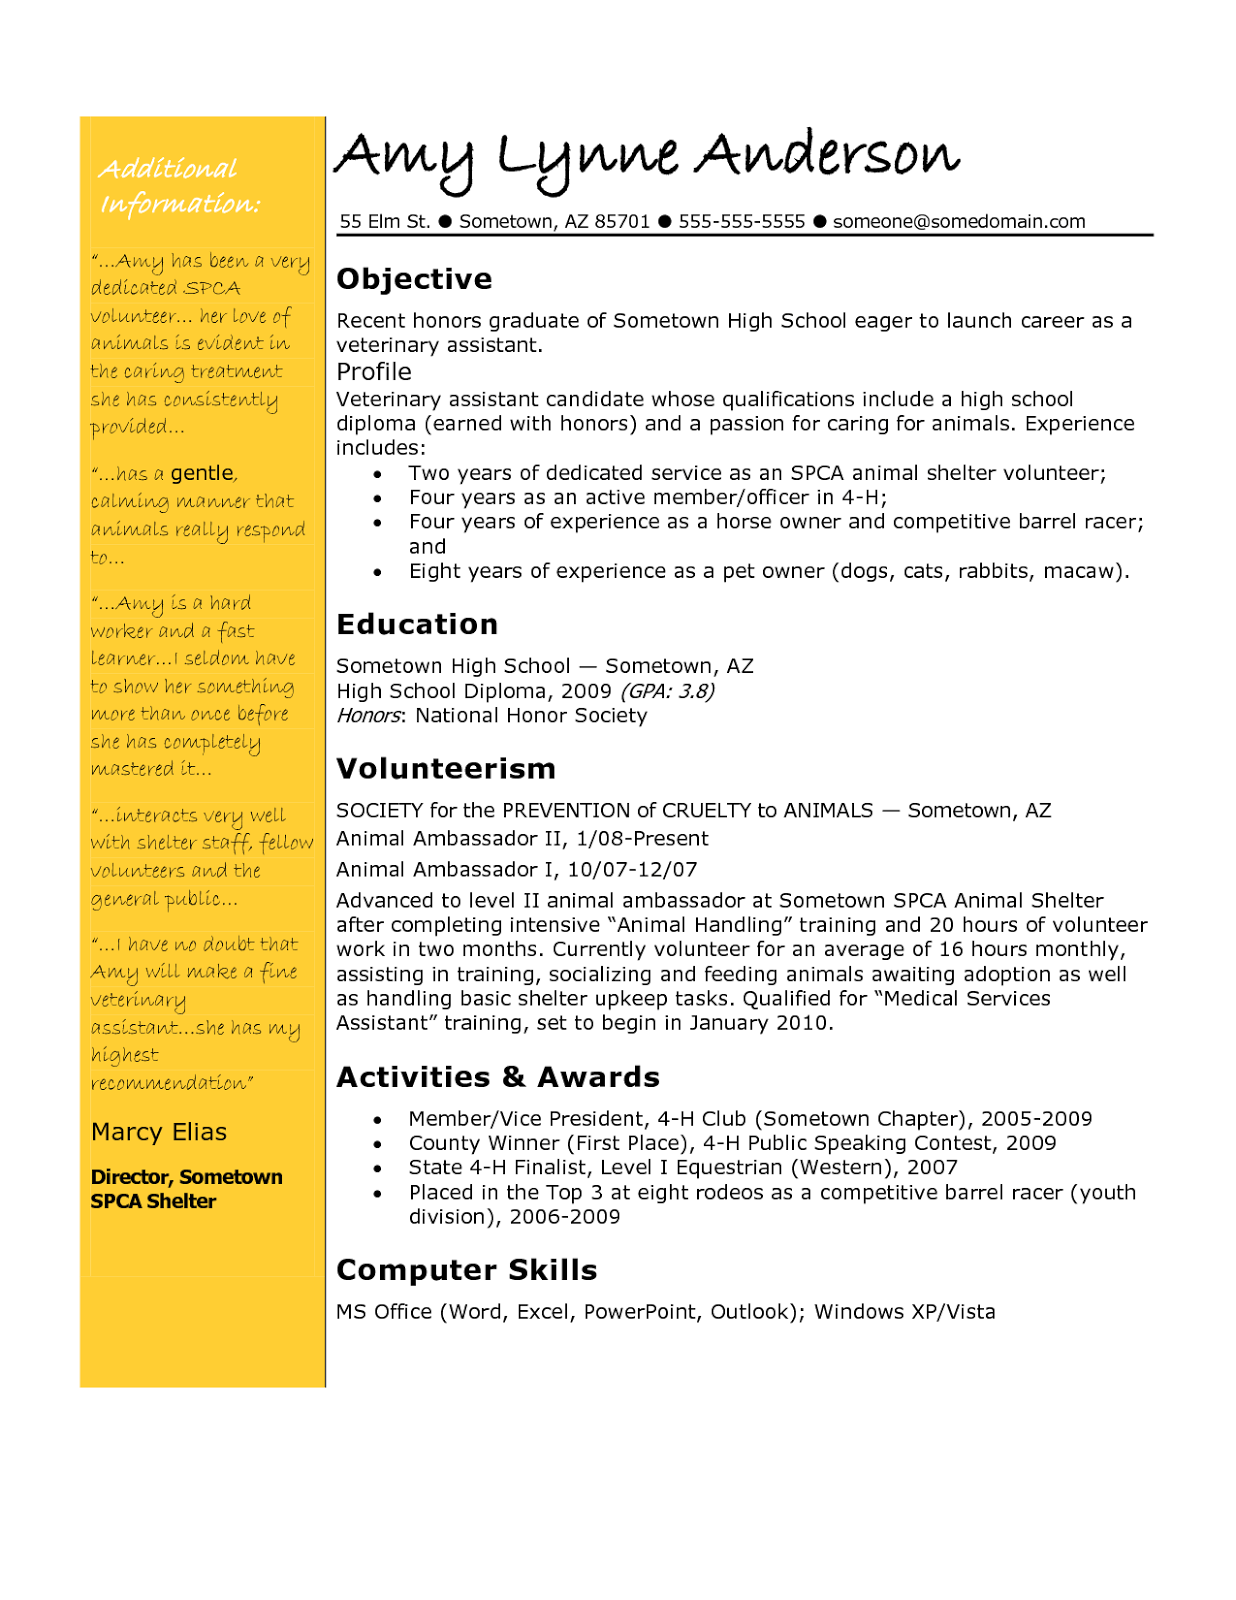 How To Write A Resume Objective For A Teaching Position Download Resume Objective Examples For Teacher In Word